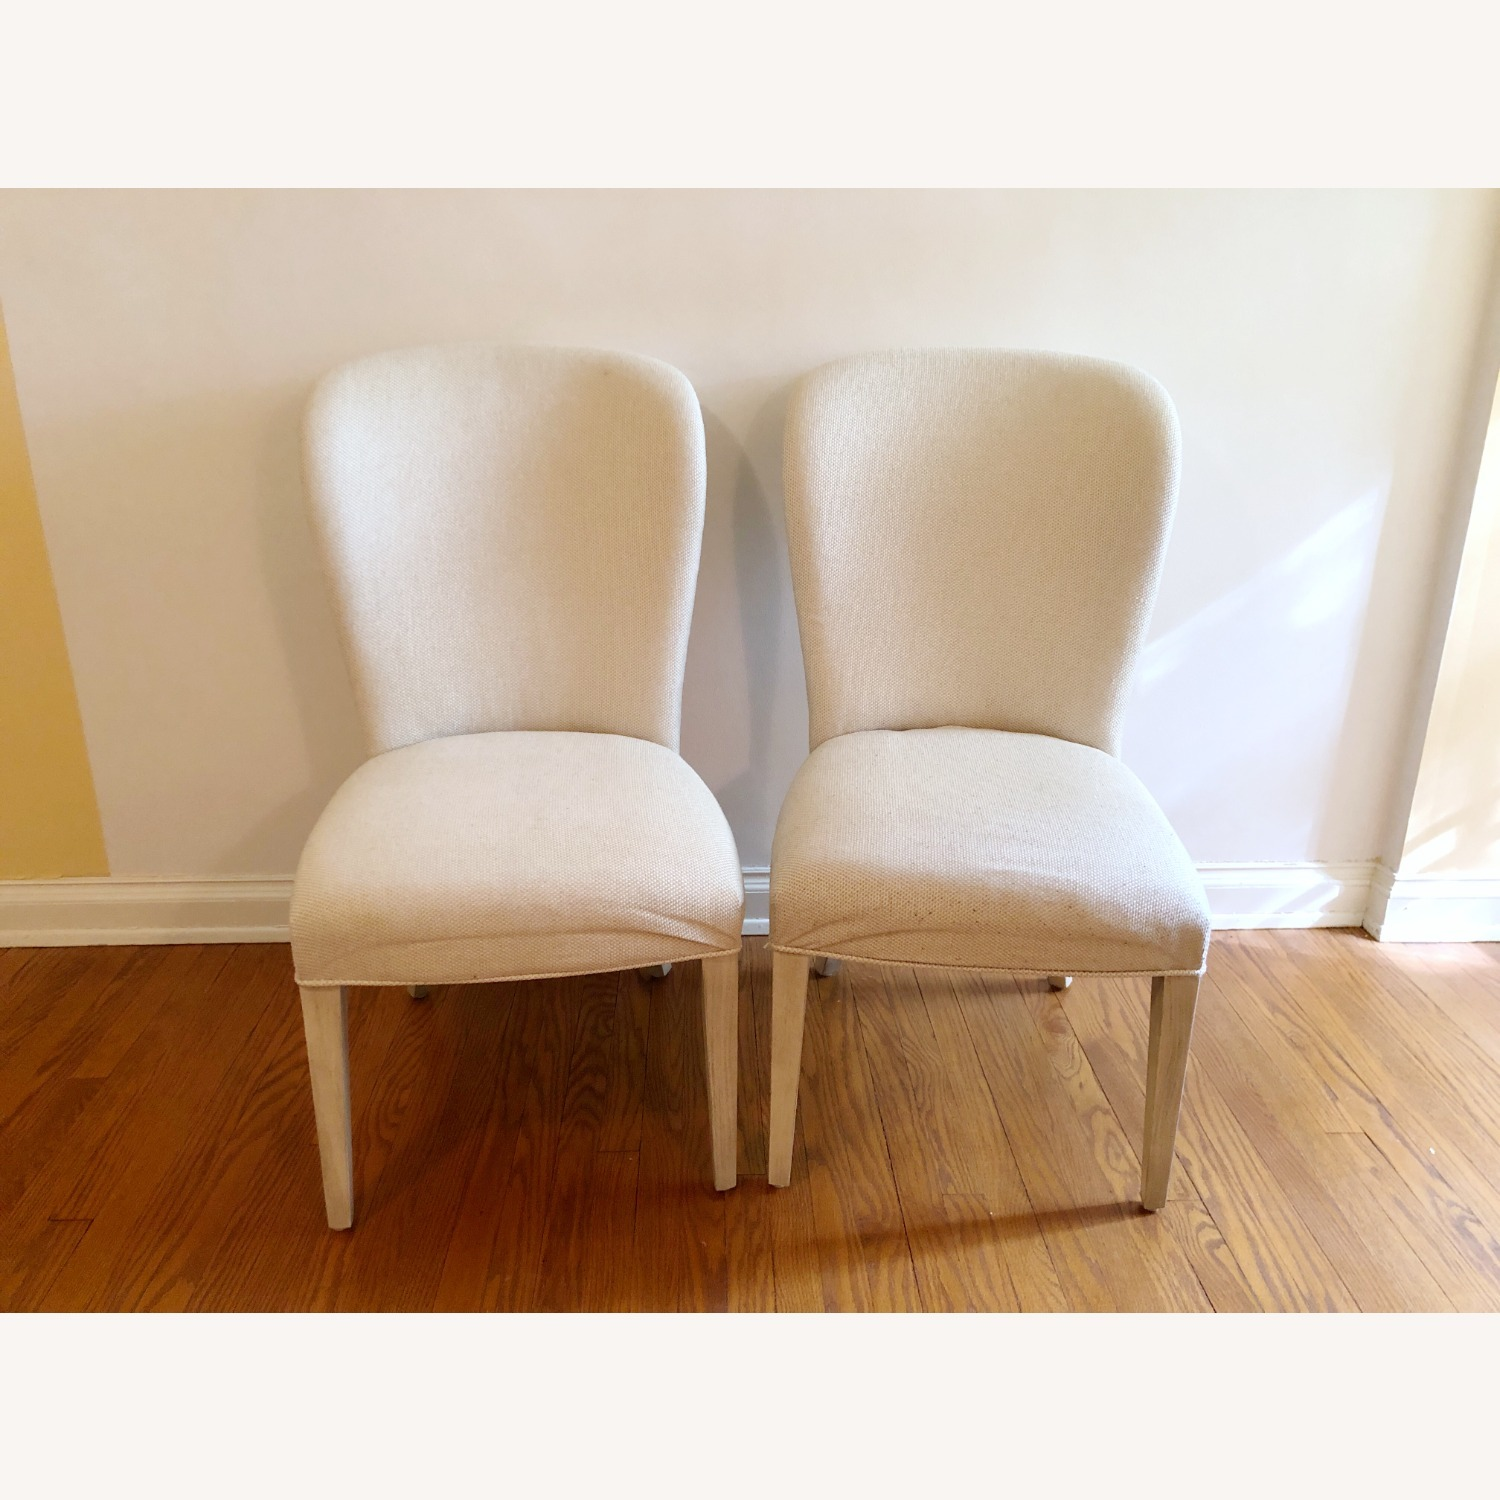 Oyster Bay Baxter Upholstered Side Chair - image-6